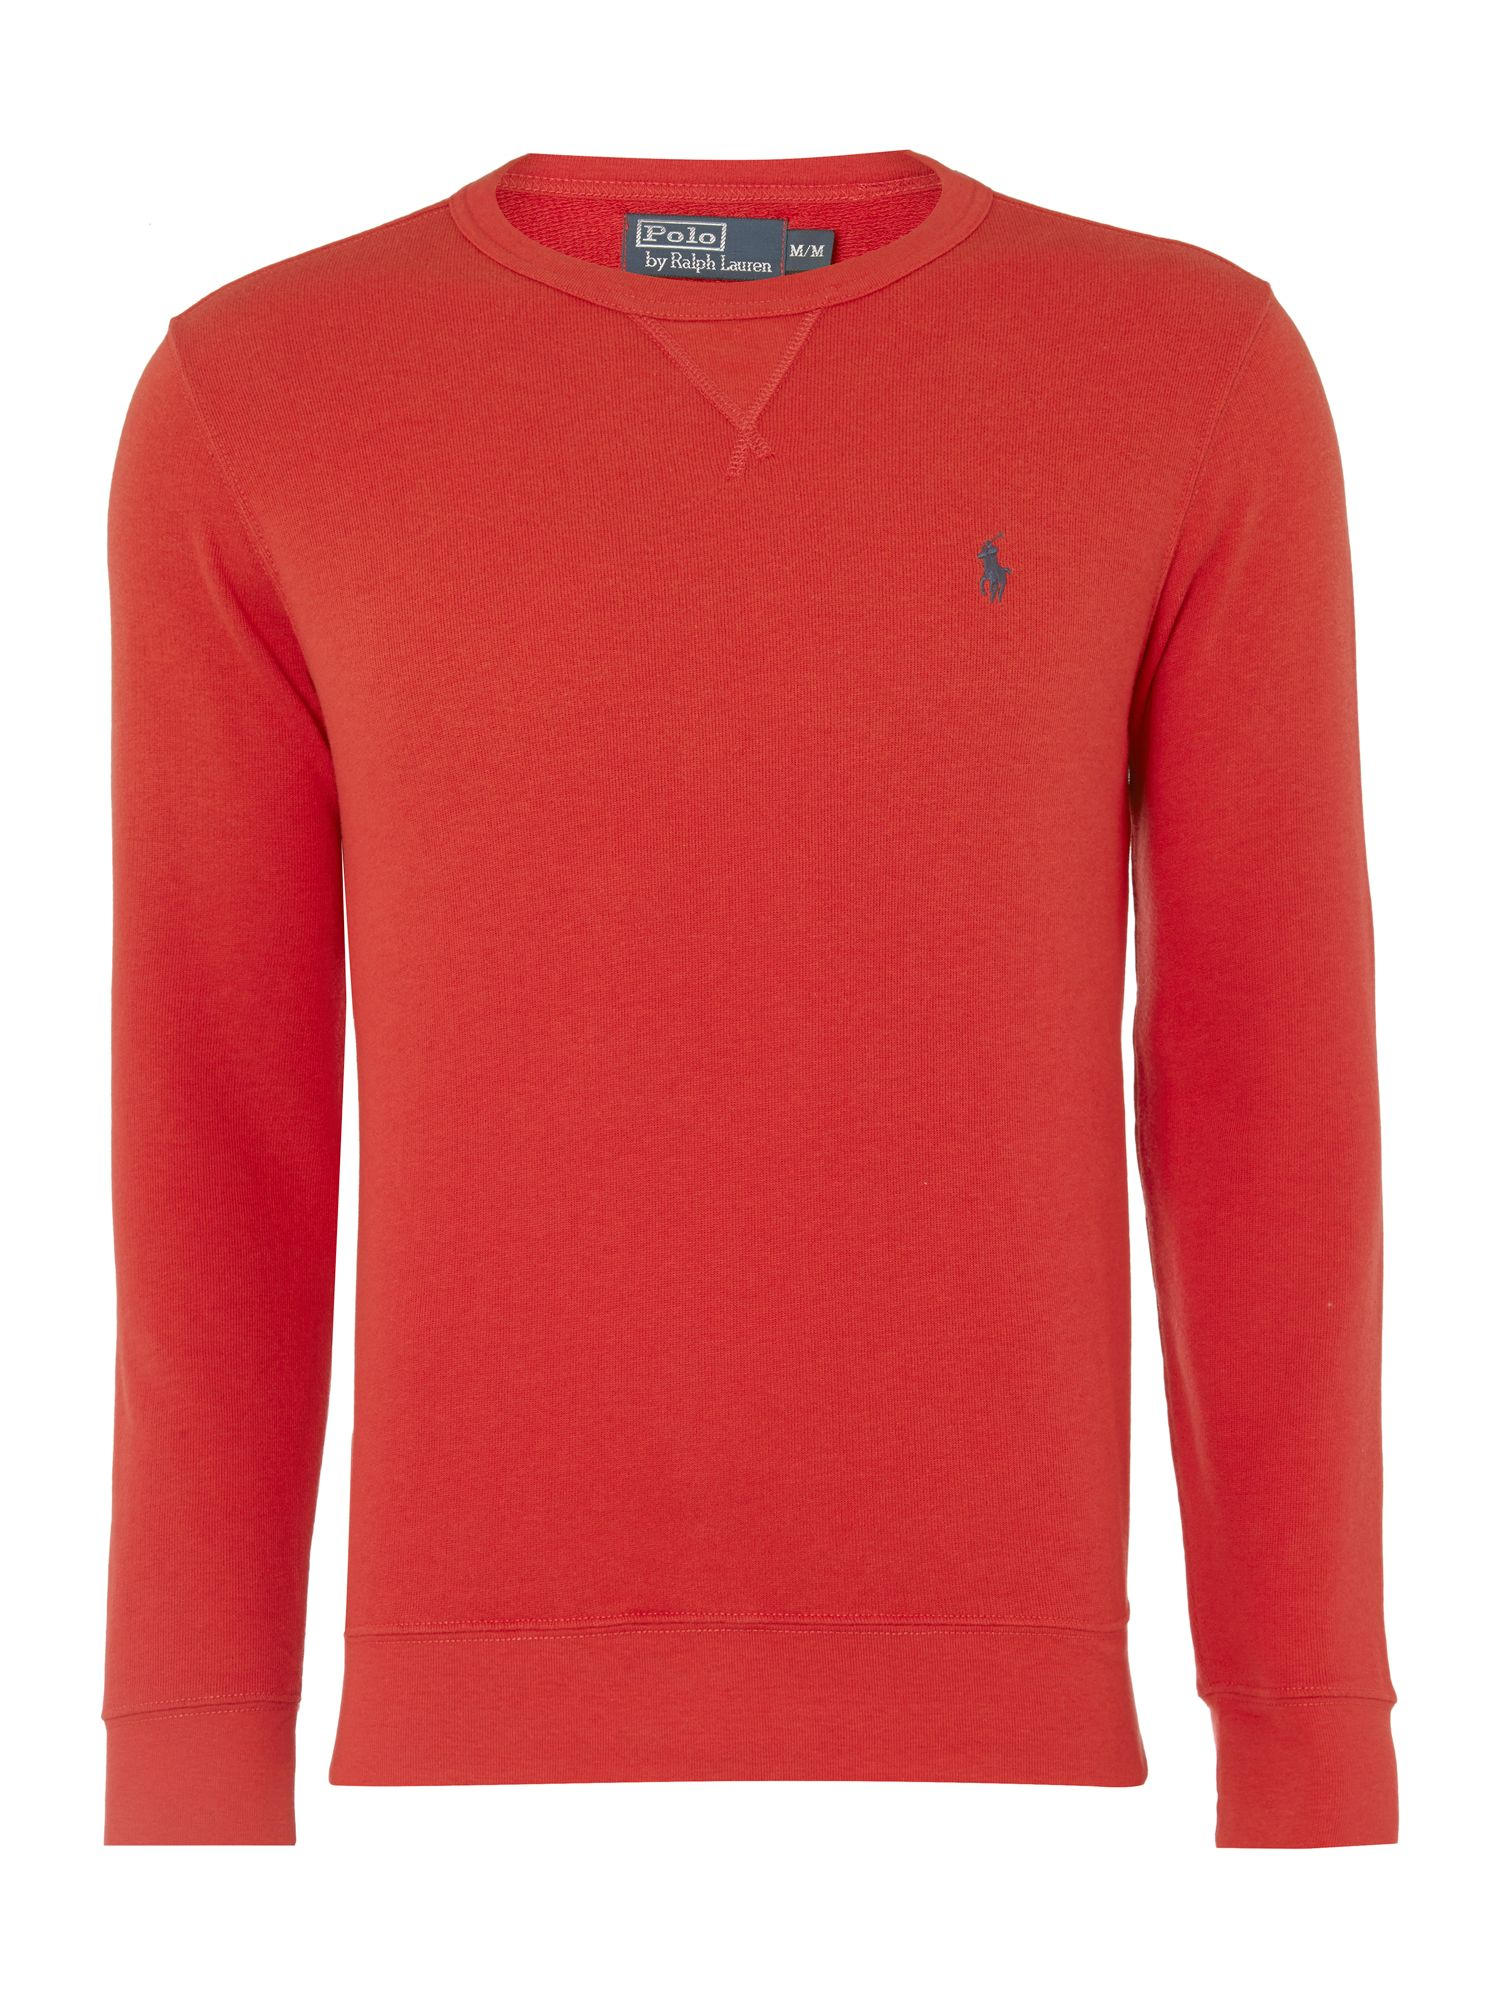 polo ralph lauren long sleeve sweatshirt in red for men lyst. Black Bedroom Furniture Sets. Home Design Ideas